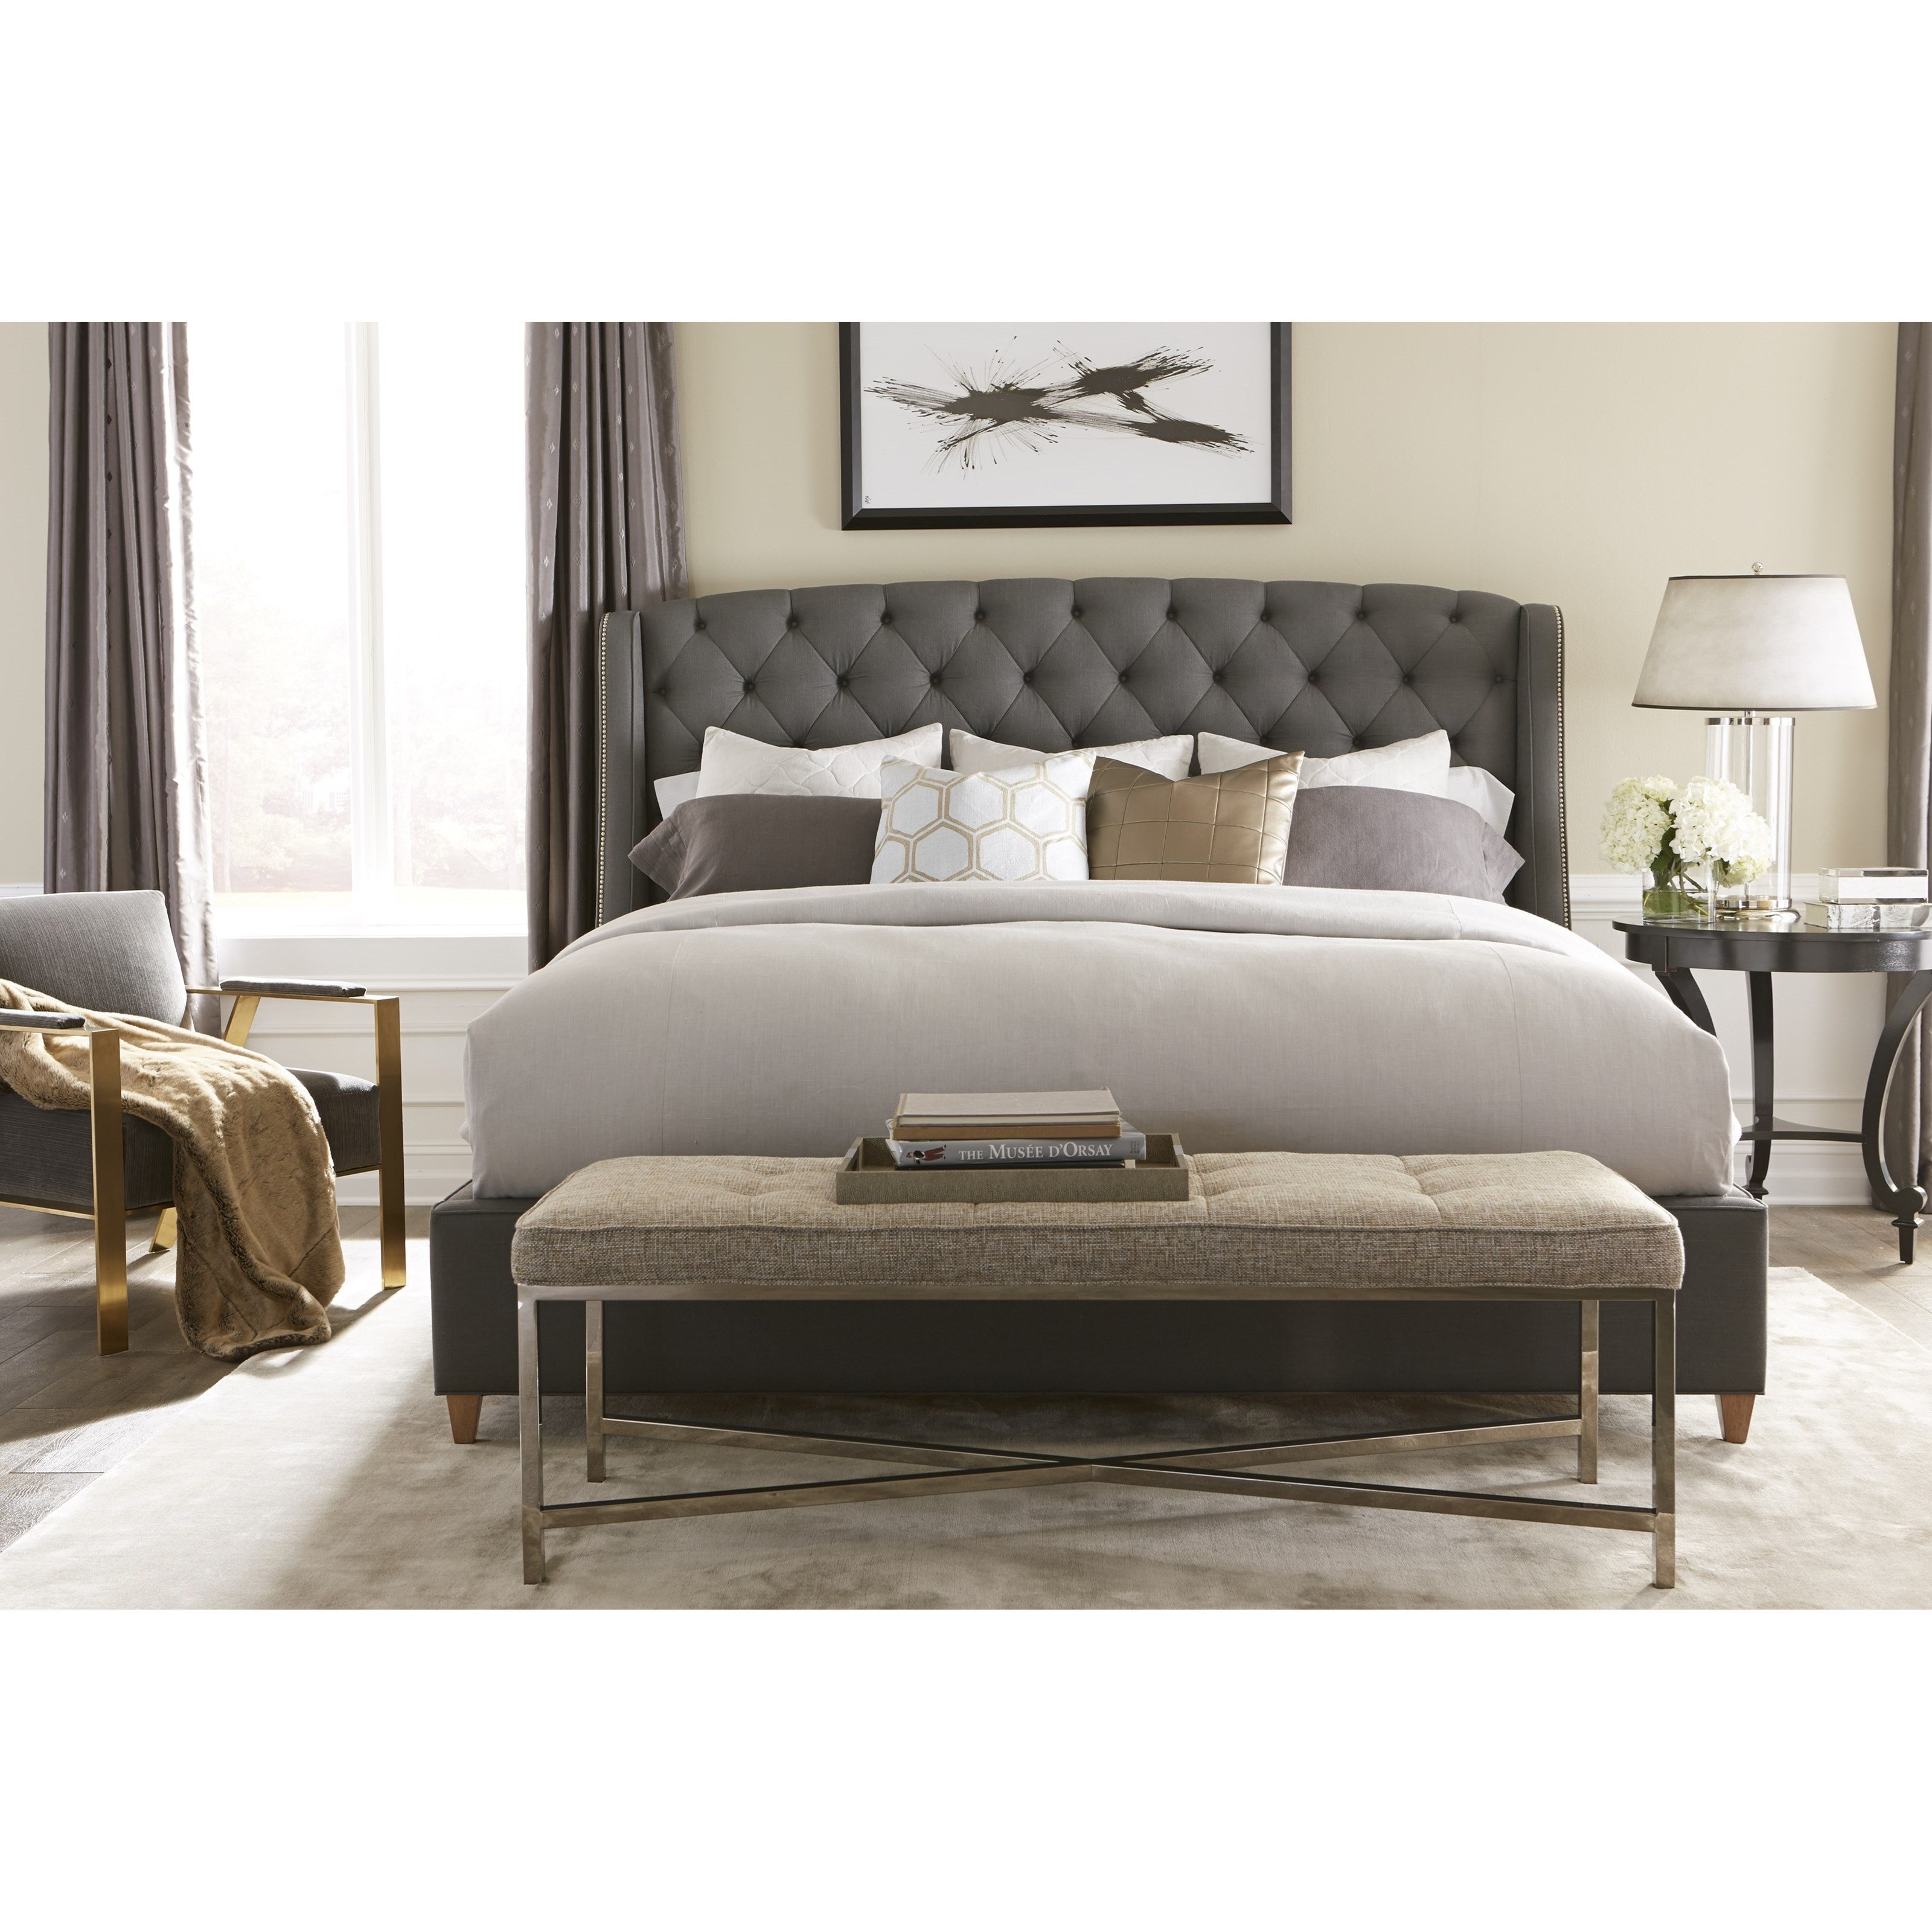 rowe my style beds kirkwood 60 king upholstered bed